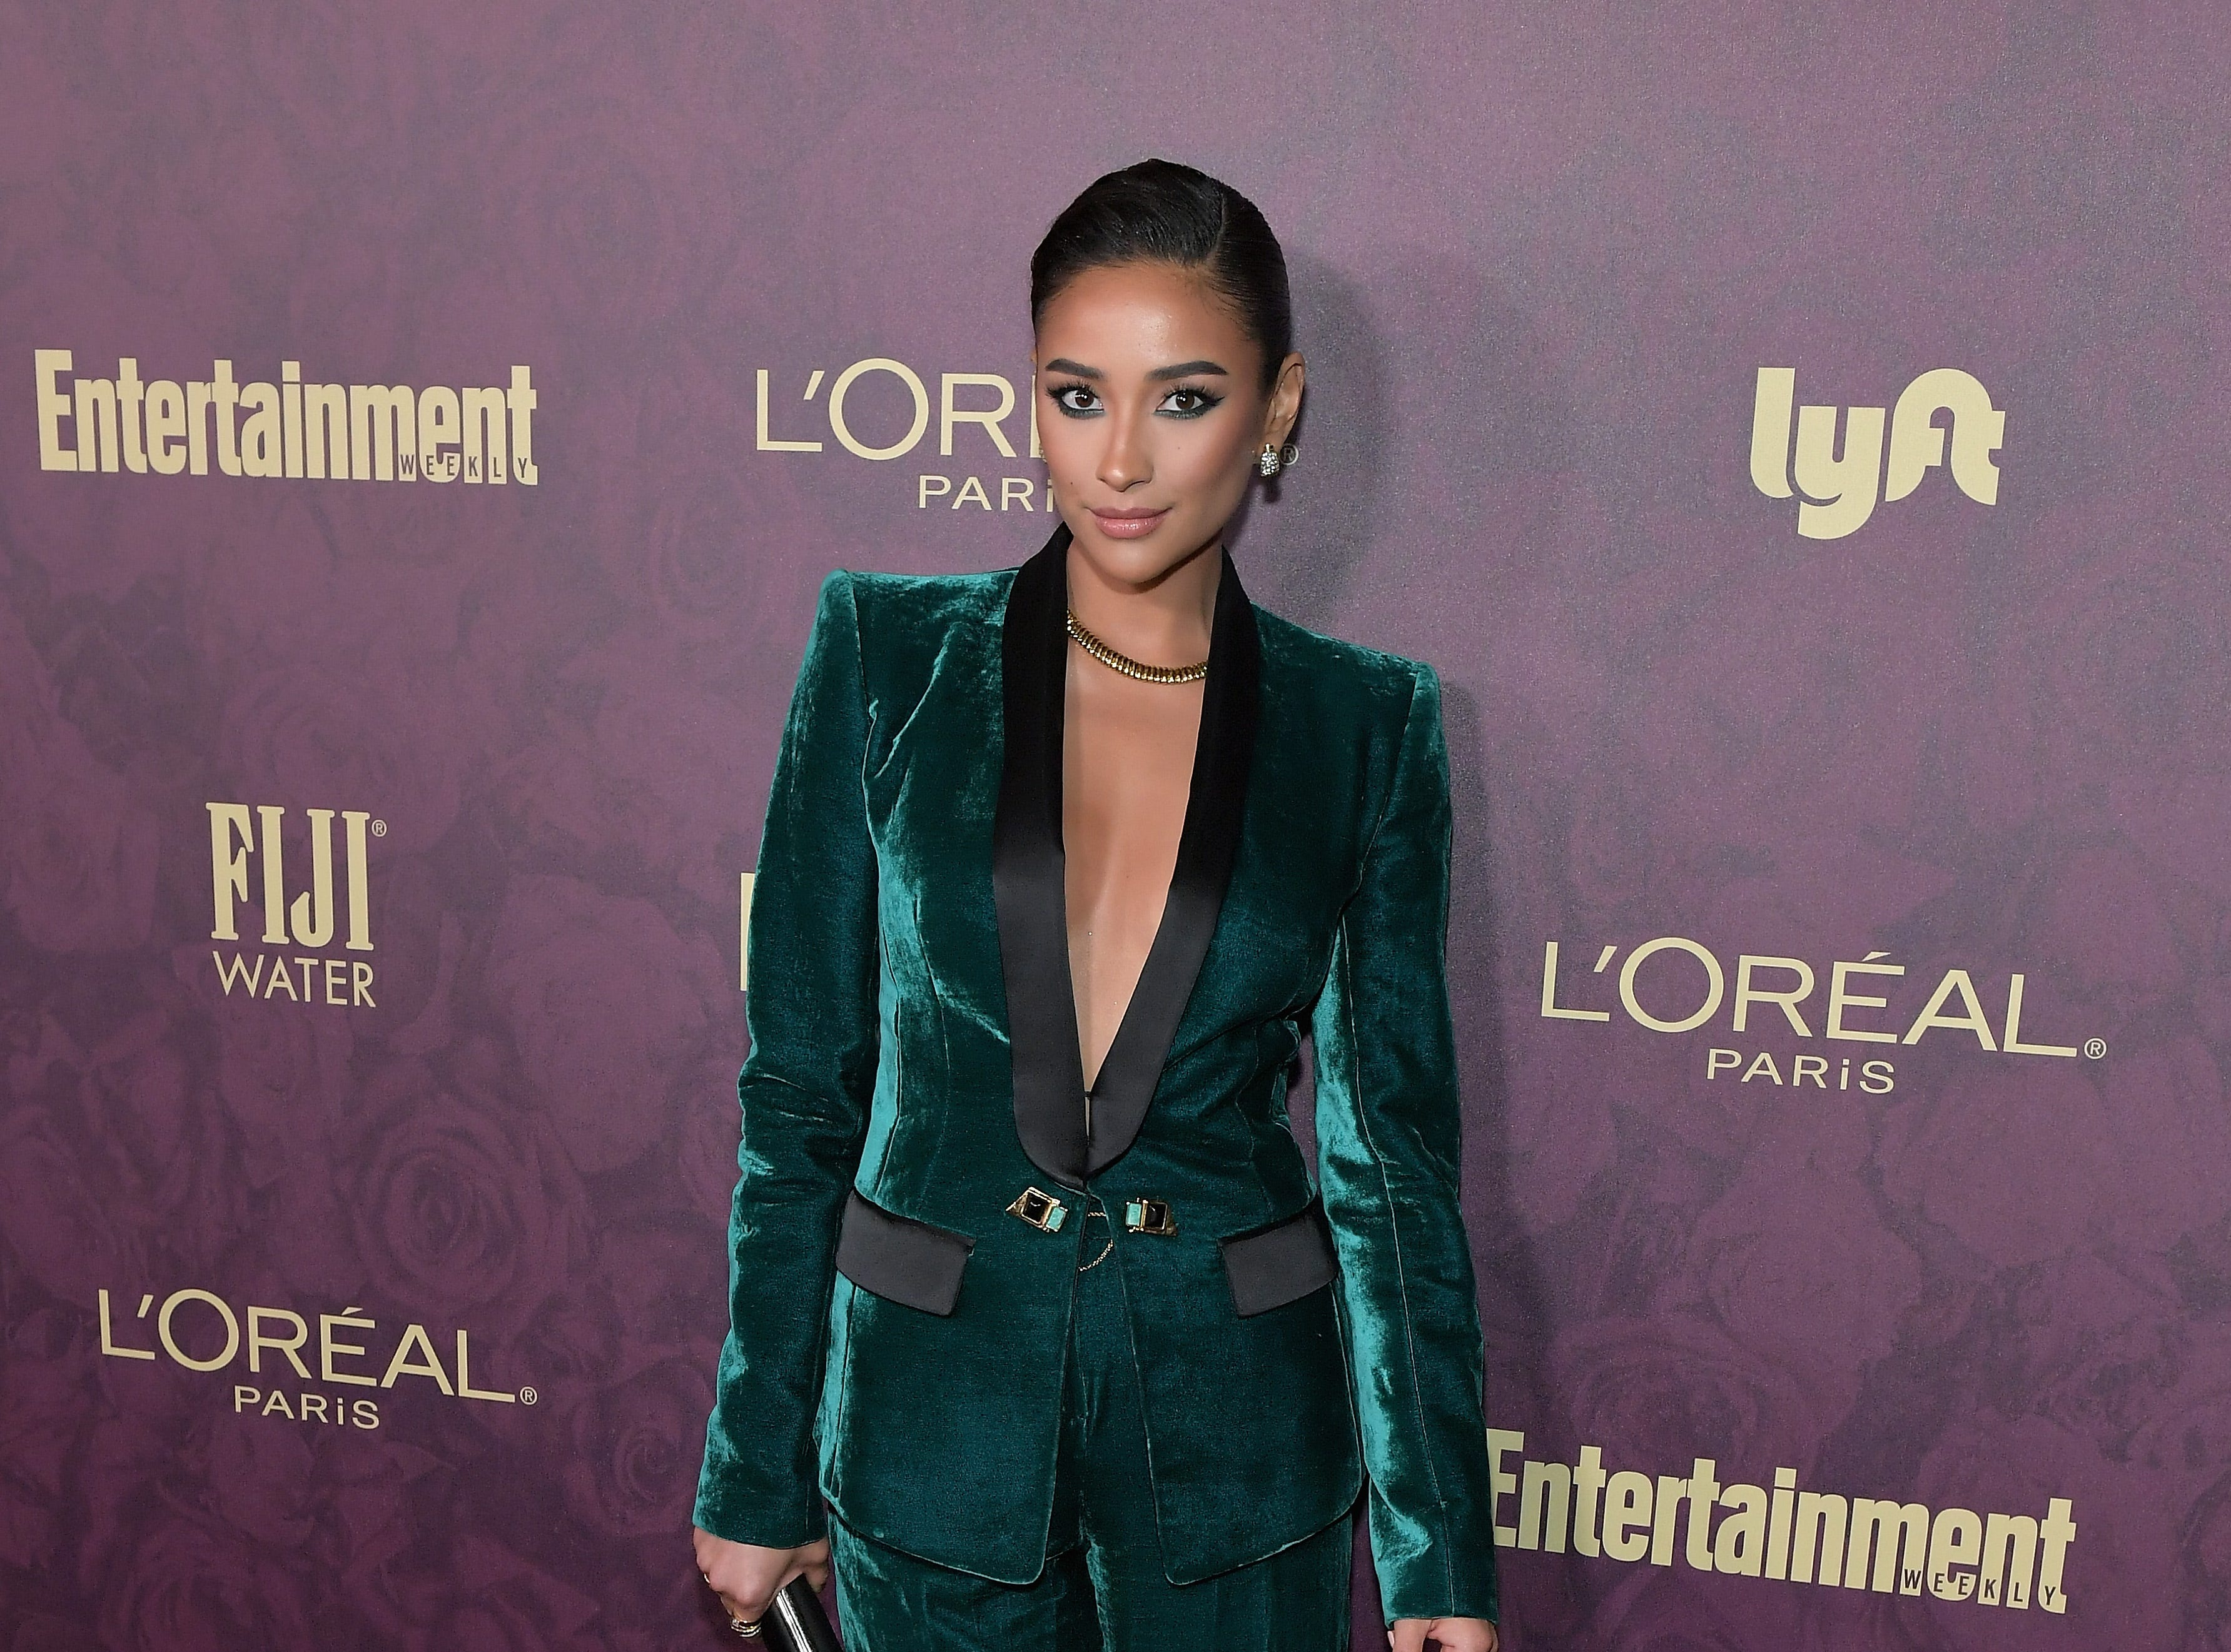 LOS ANGELES, CA - SEPTEMBER 15:  Shay Mitchell attends the 2018 Pre-Emmy Party hosted by Entertainment Weekly and L'Oreal Paris at Sunset Tower on September 15, 2018 in Los Angeles, California.  (Photo by Neilson Barnard/Getty Images for Entertainment Weekly) ORG XMIT: 775214113 ORIG FILE ID: 1033989138